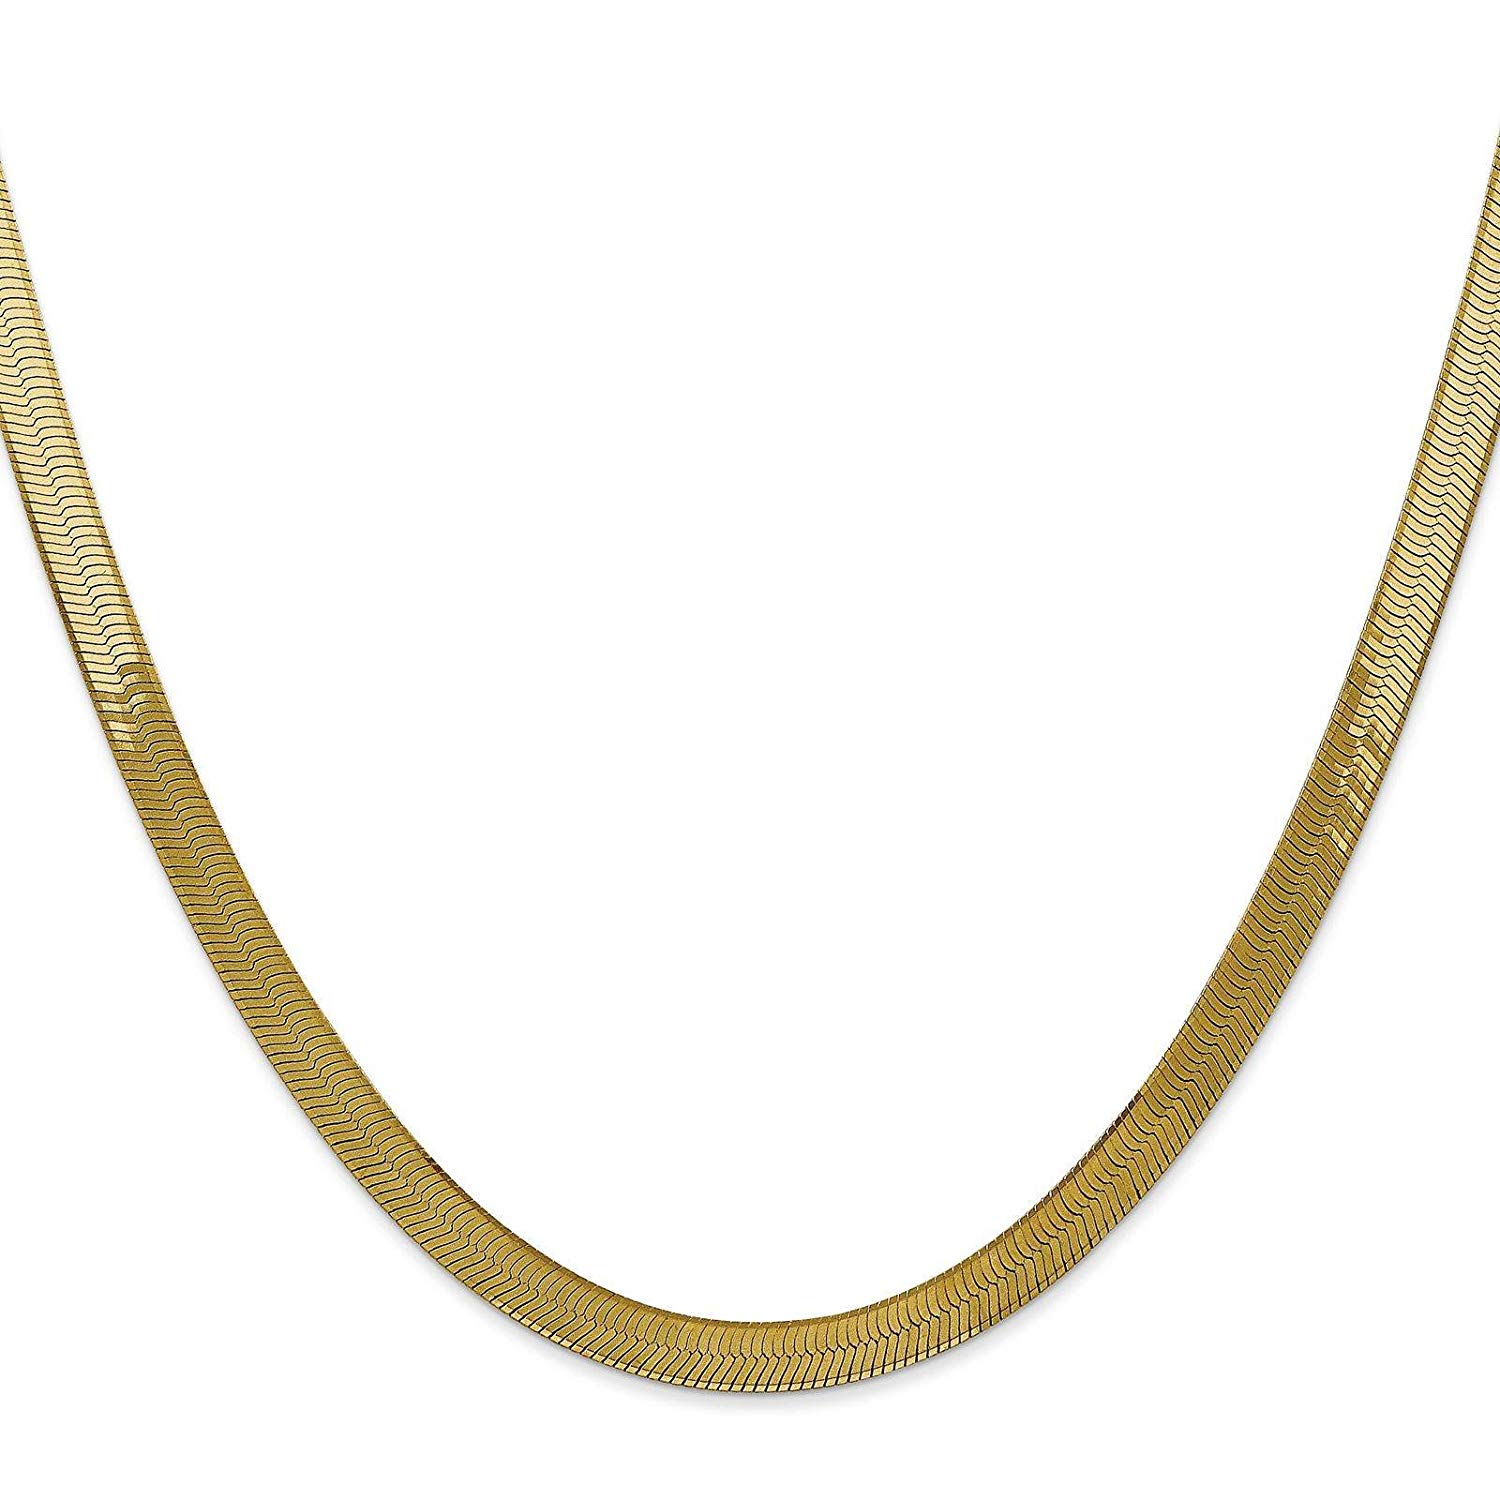 23cbf3de649c3d Get Quotations · 14k Yellow Gold 5.0mm Polished Silky Herringbone Chain  Necklace Bracelet 7